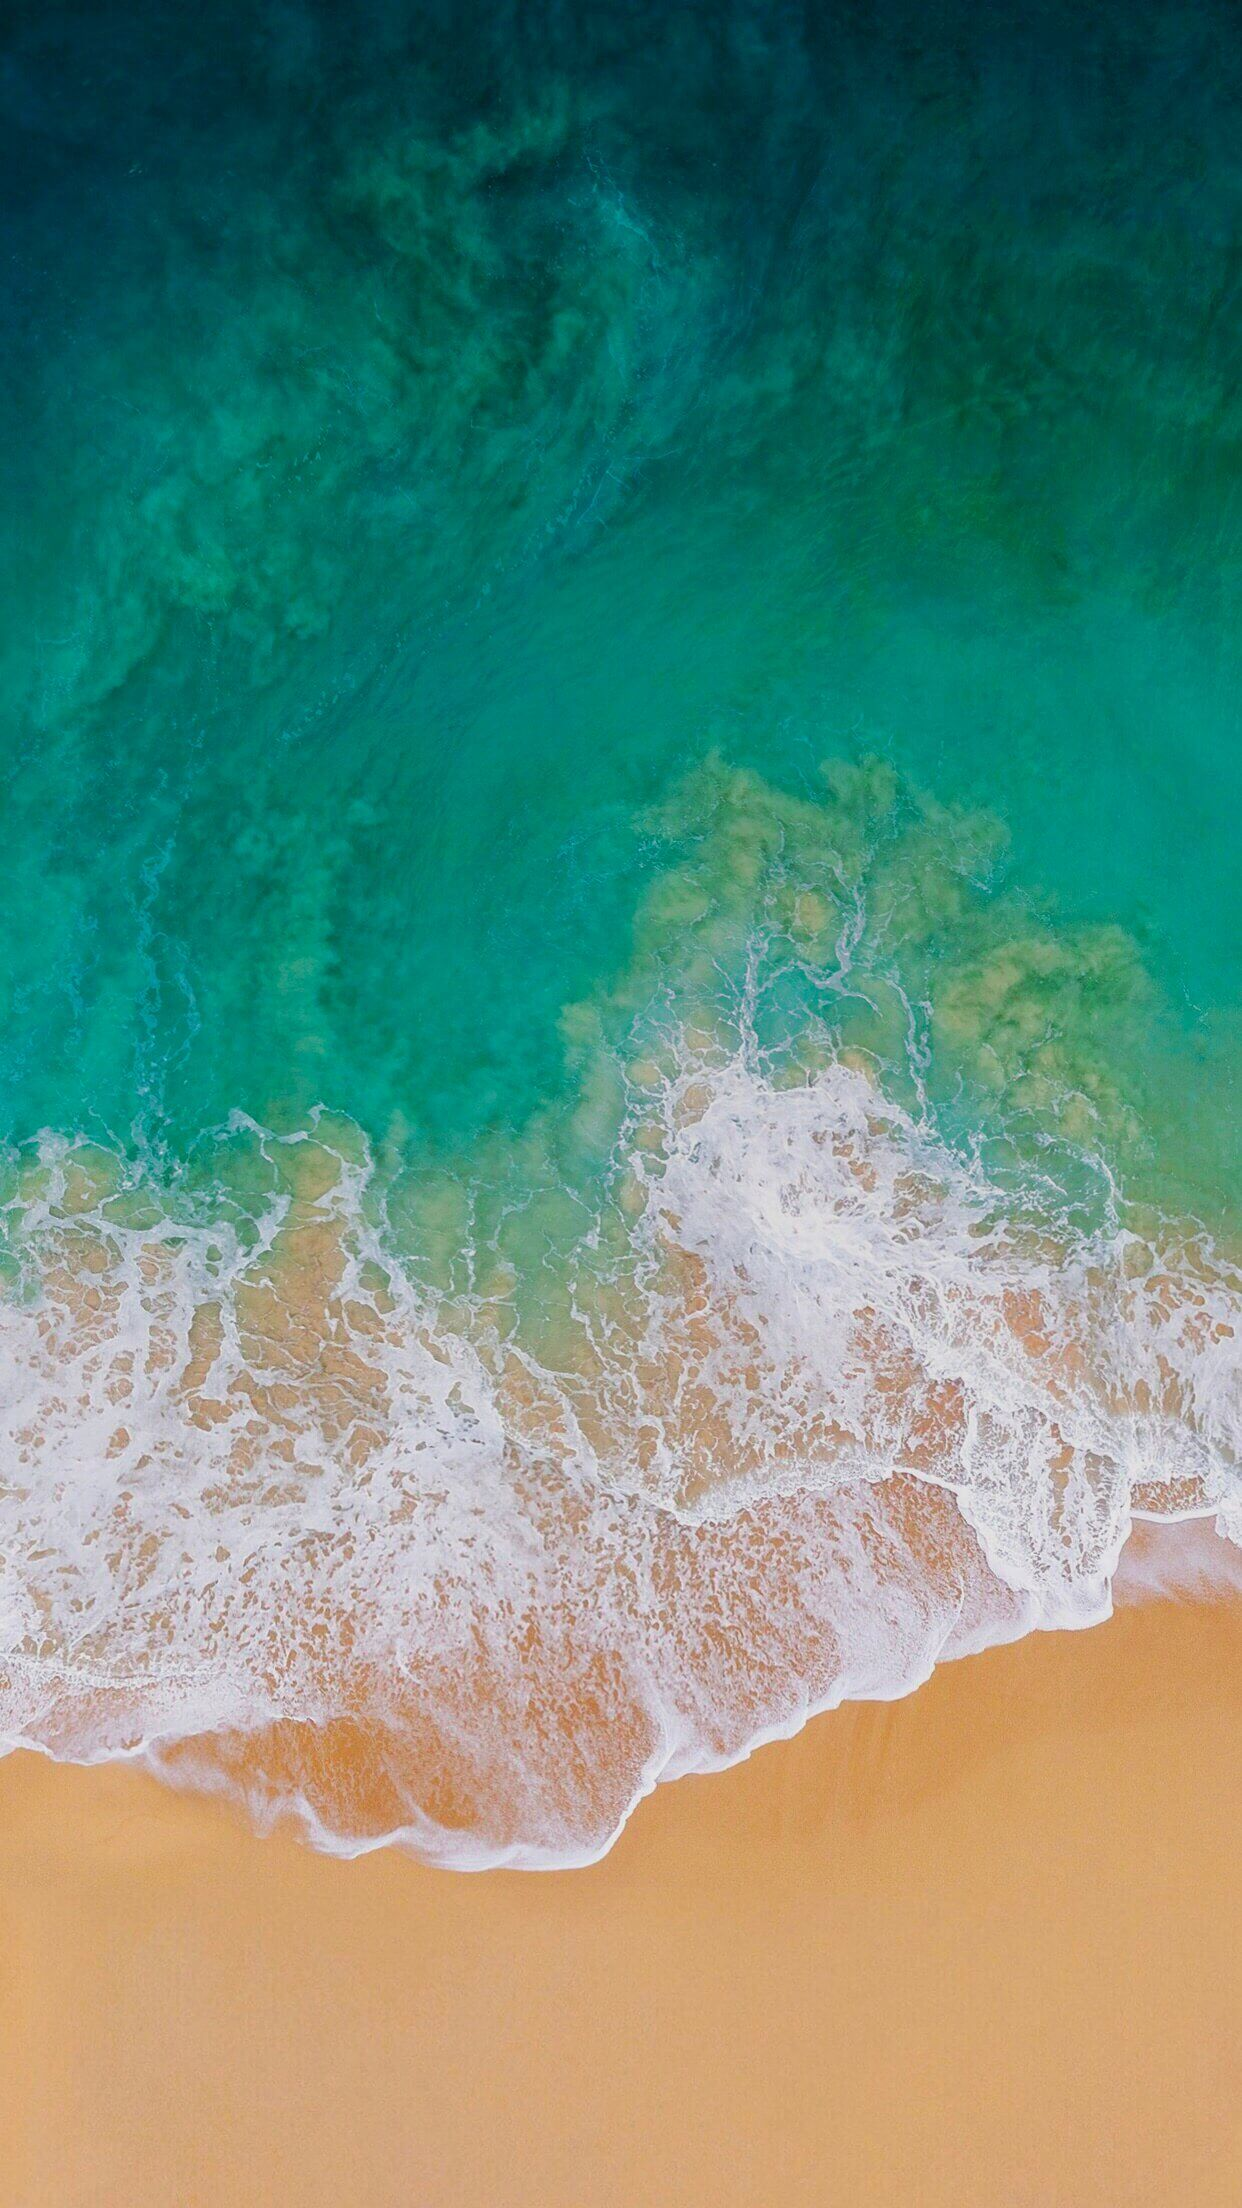 ios 8 wallpaper 4k: Les Fonds D'écran IOS 11 Et MacOS High Sierra